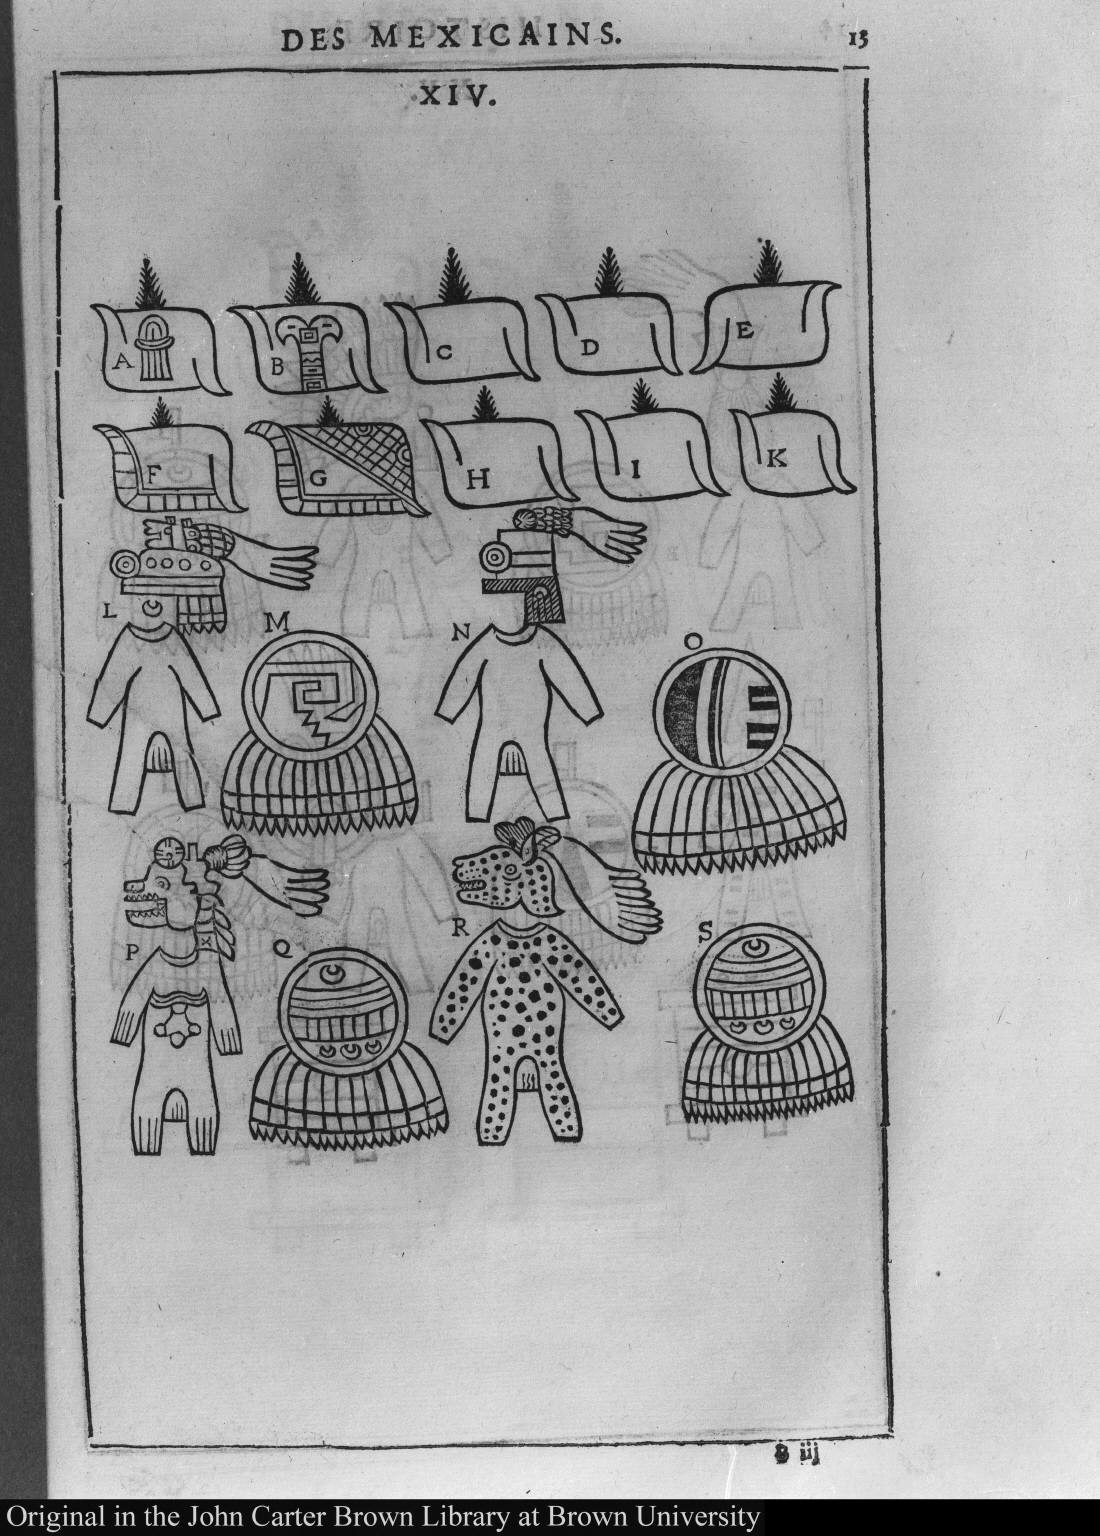 [Accounts of tribute to Aztec rulers]